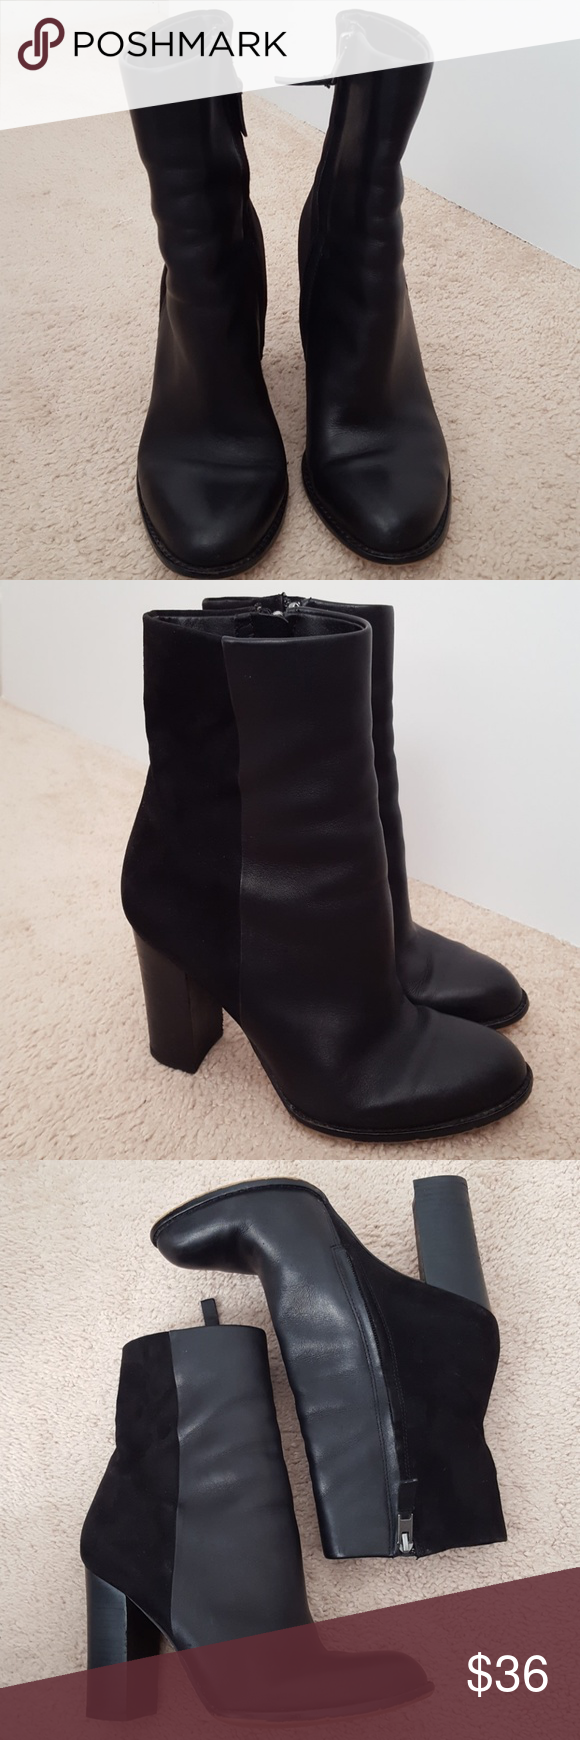 7f60aebc5 Sam Edelman Reyes leather fabric boot size 7.5 Preowned. Good condition  Leather and fabric upper Balance man-made 3 3 4